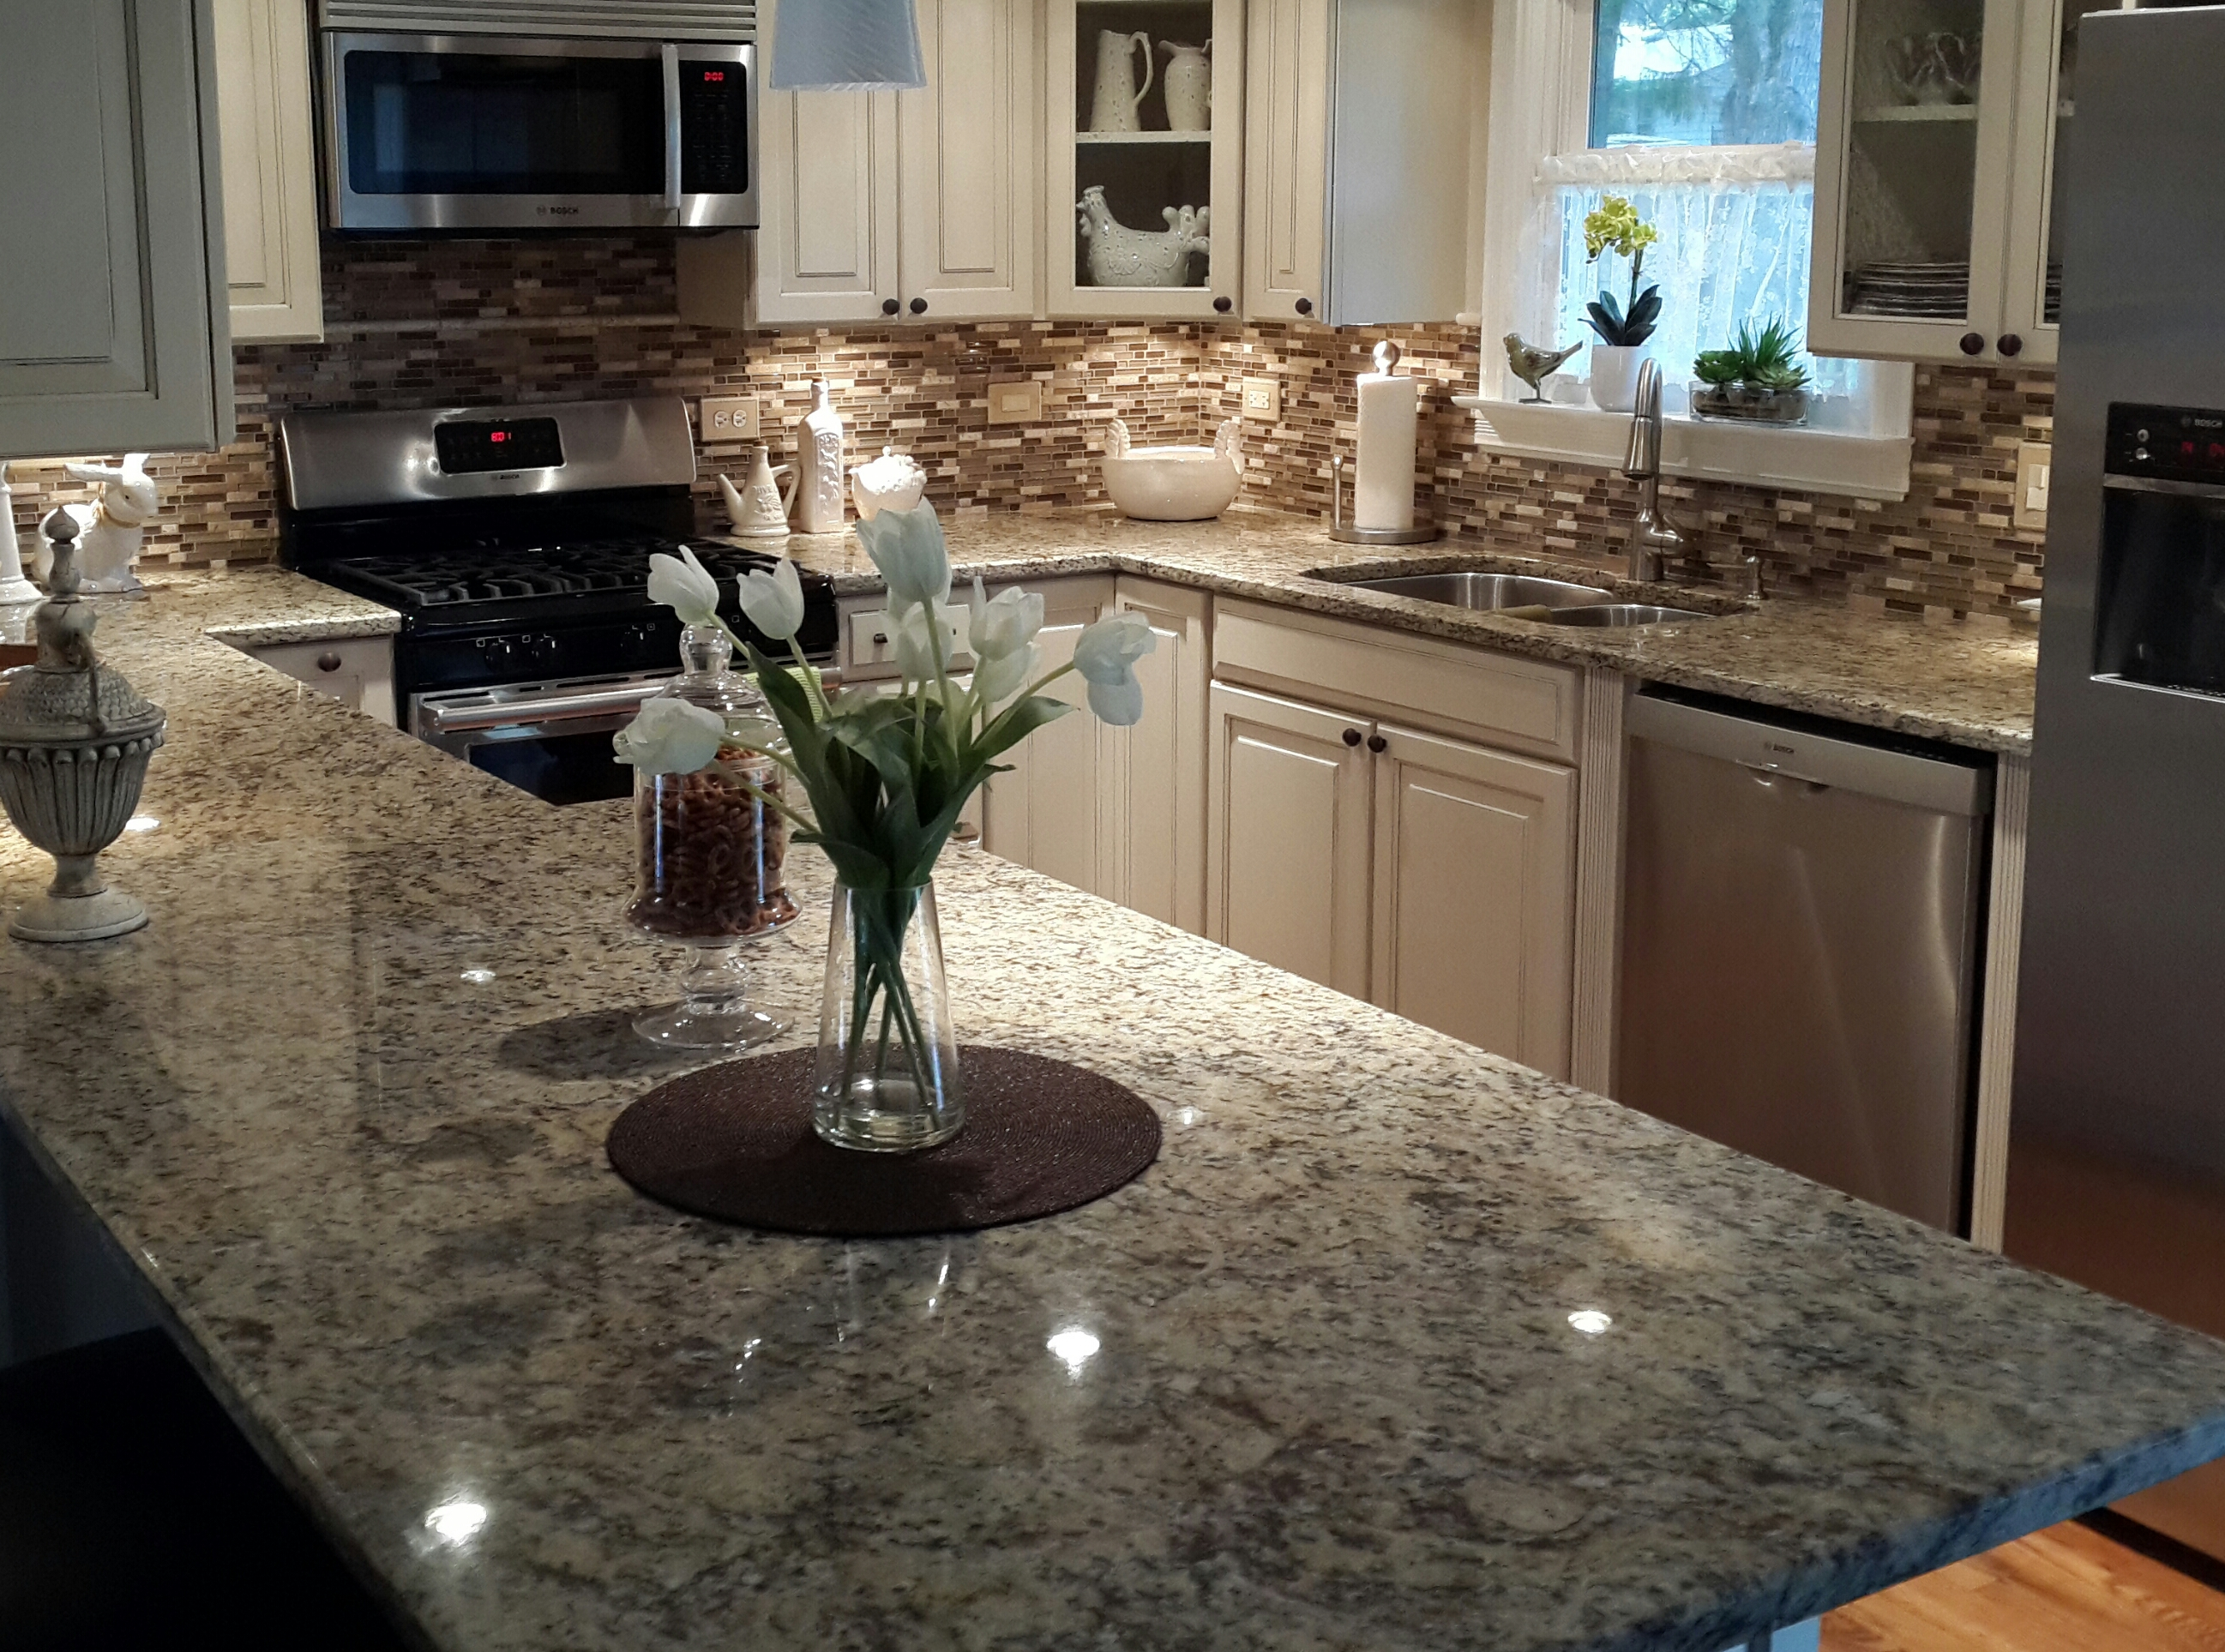 prices recycled prefab tops choices how in best quartz cost for concrete countertop countertops cheap material popular kitchen does granite discount much manufactured materials